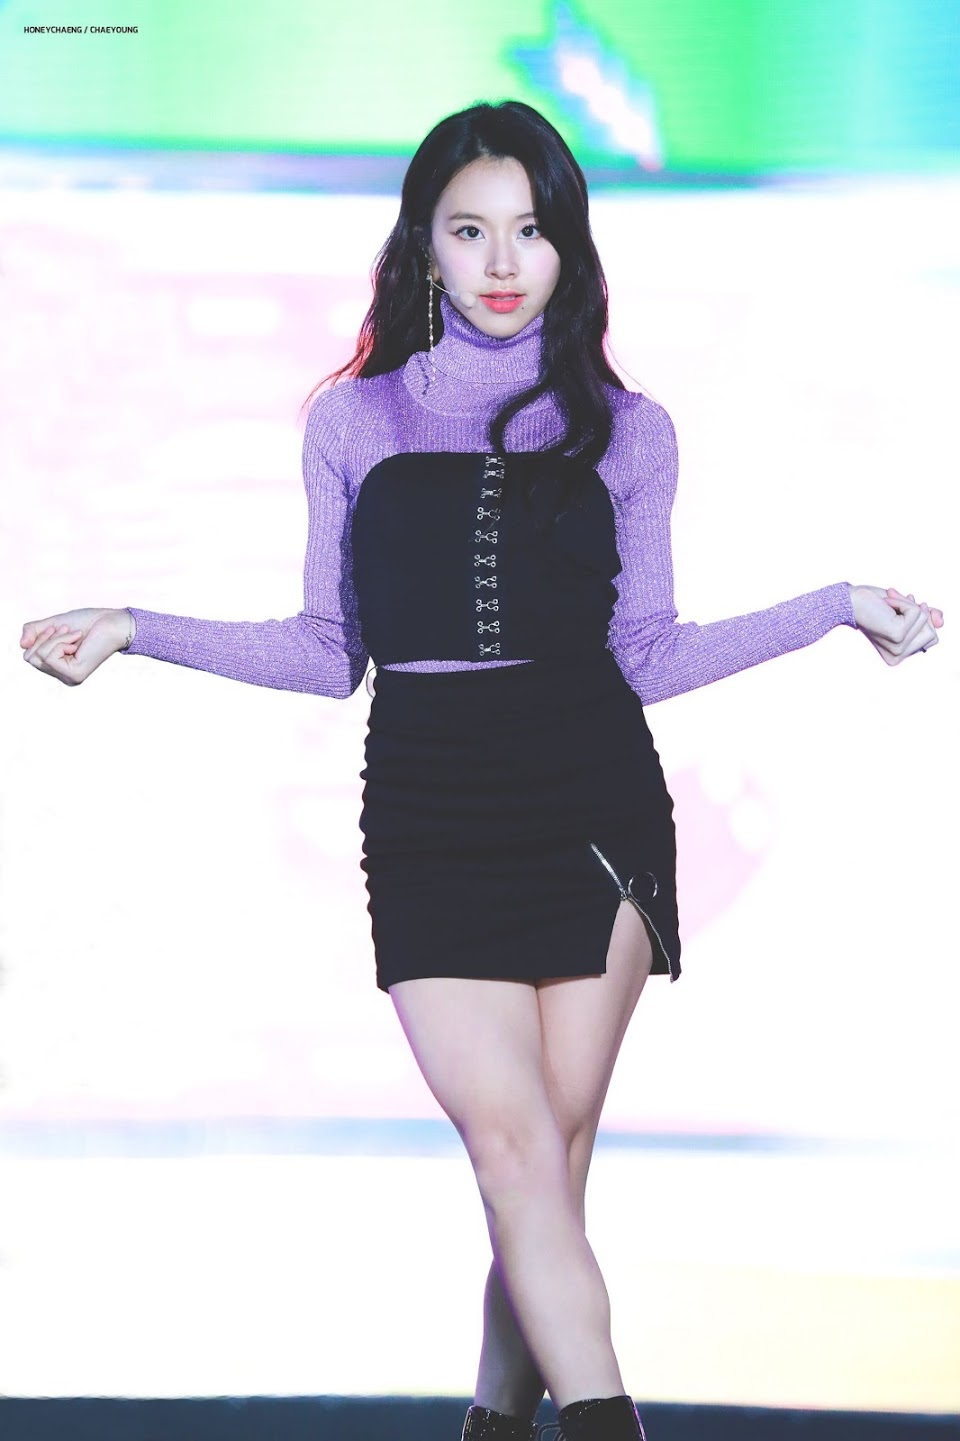 chaeyoung étape 27